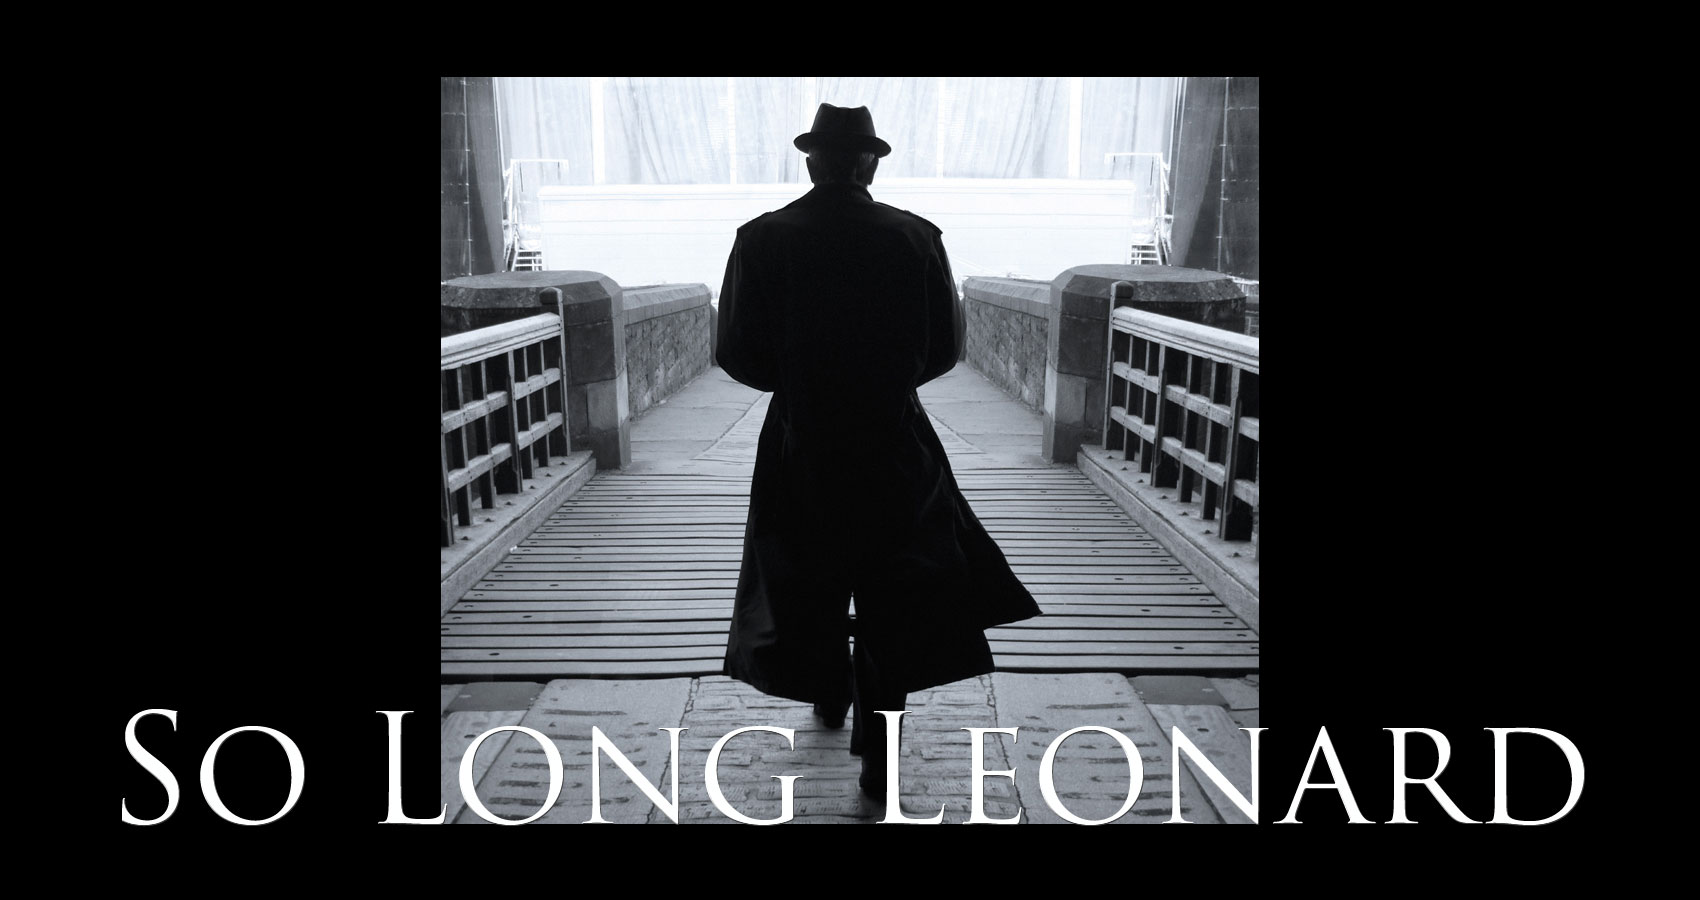 So Long Leonard written by Martin Brown at Spillwords.com